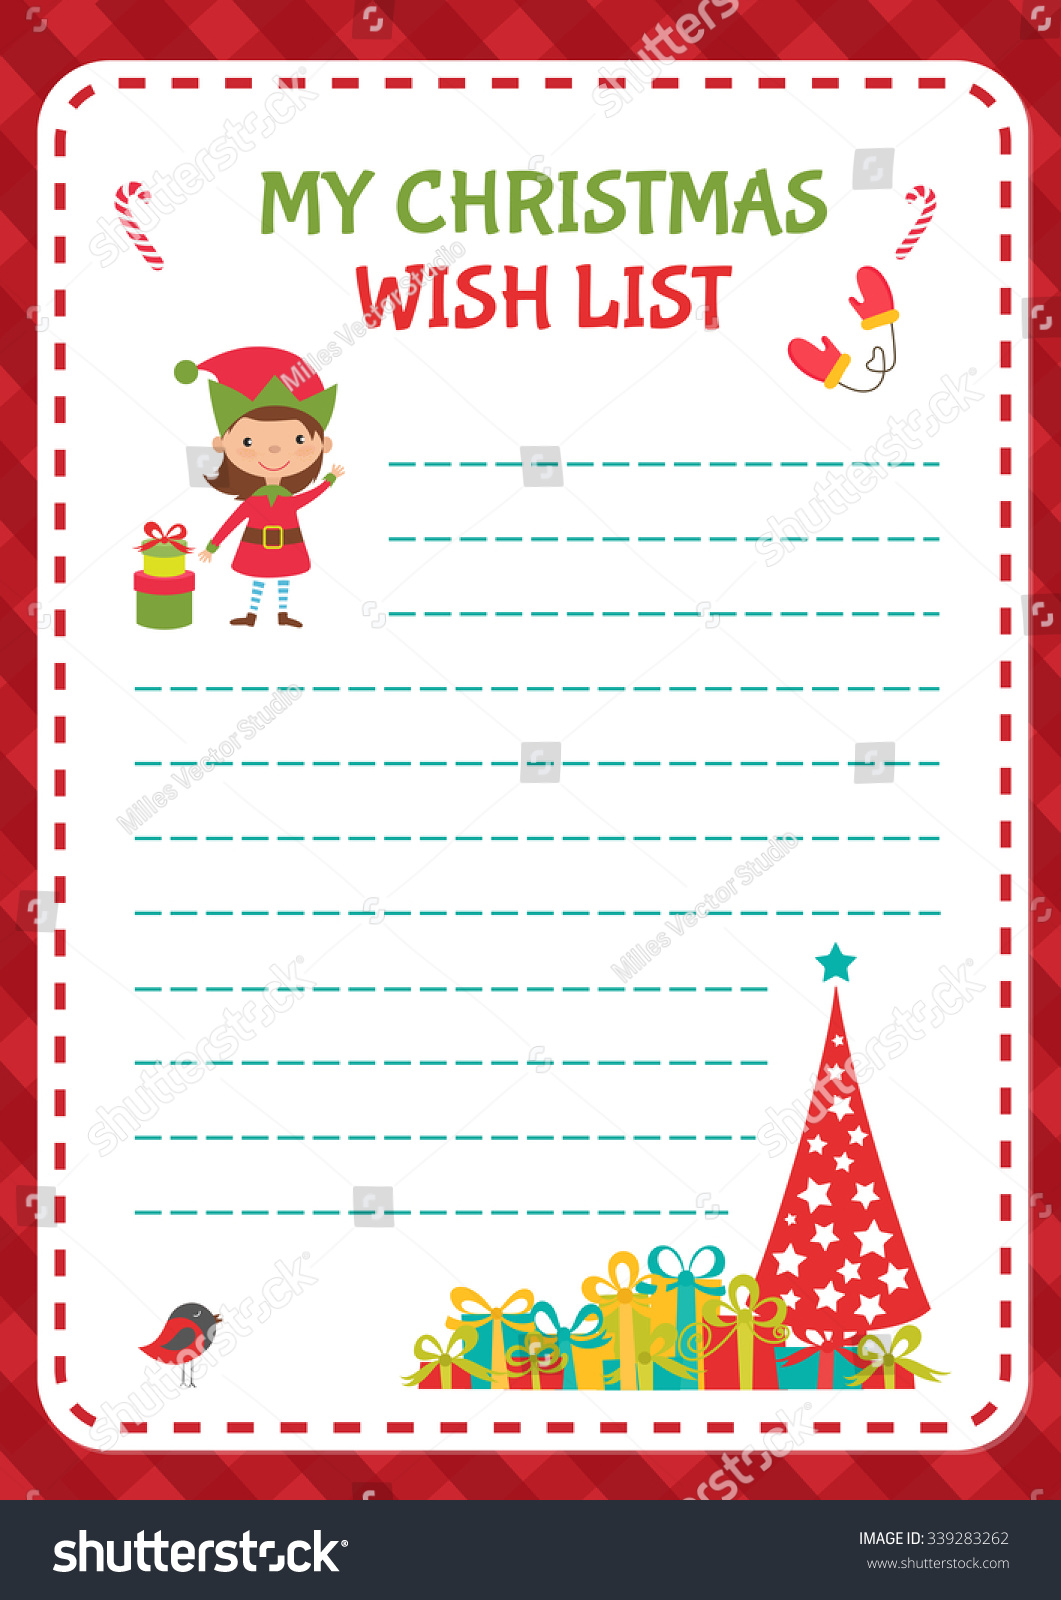 Christmas Wishlist Template Vector Illustration Stock